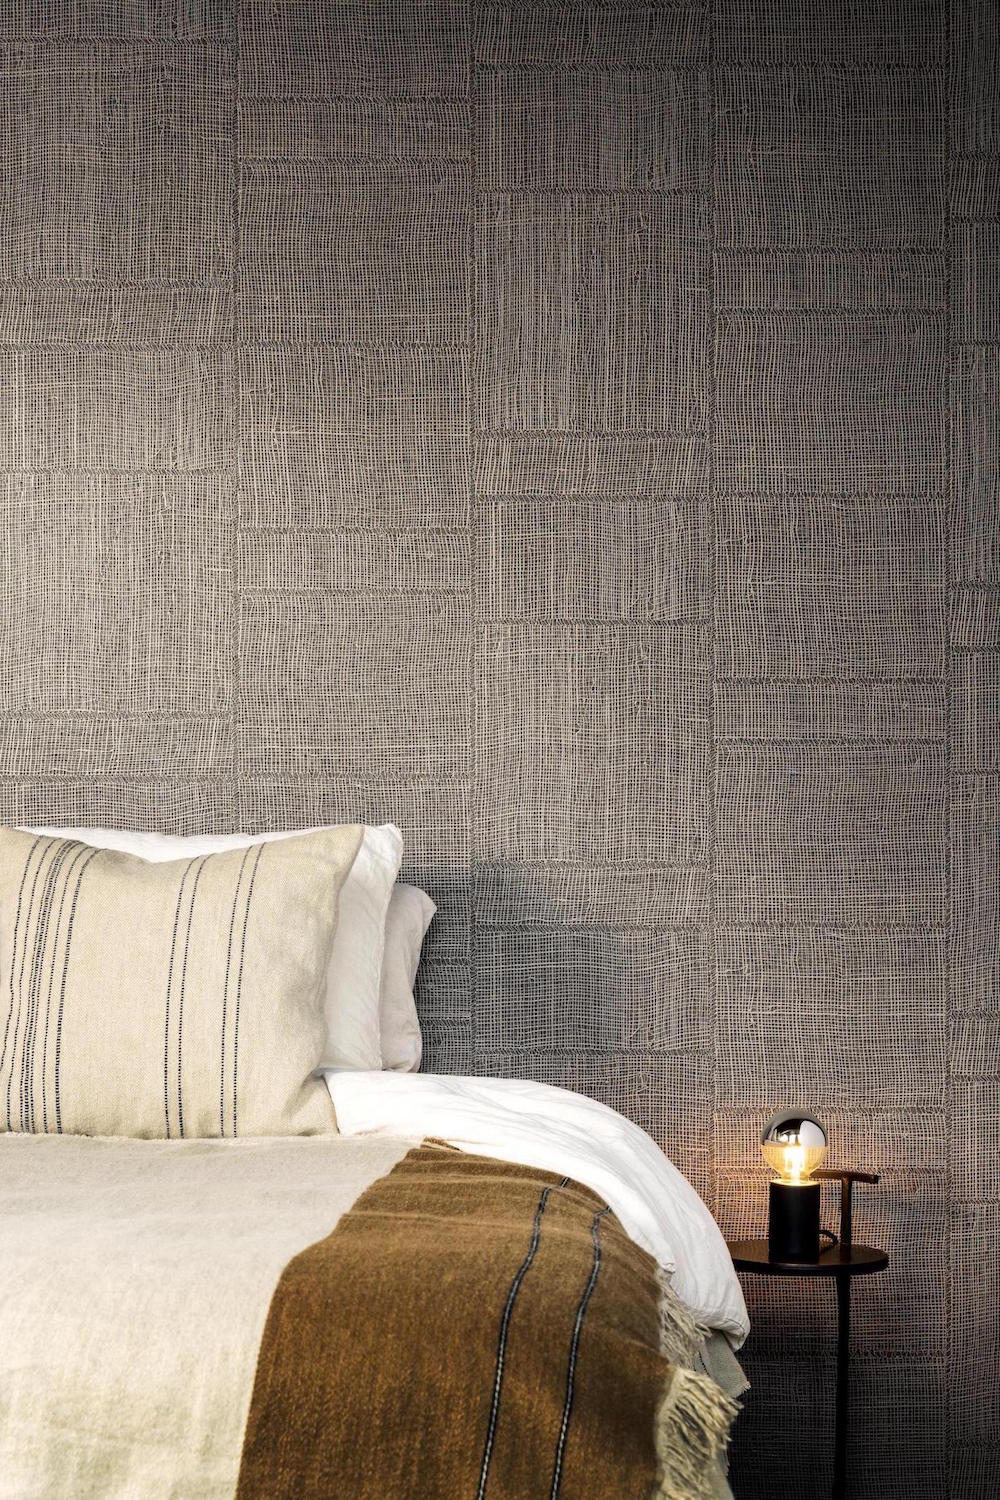 A bar guestroom with textured wallpaper